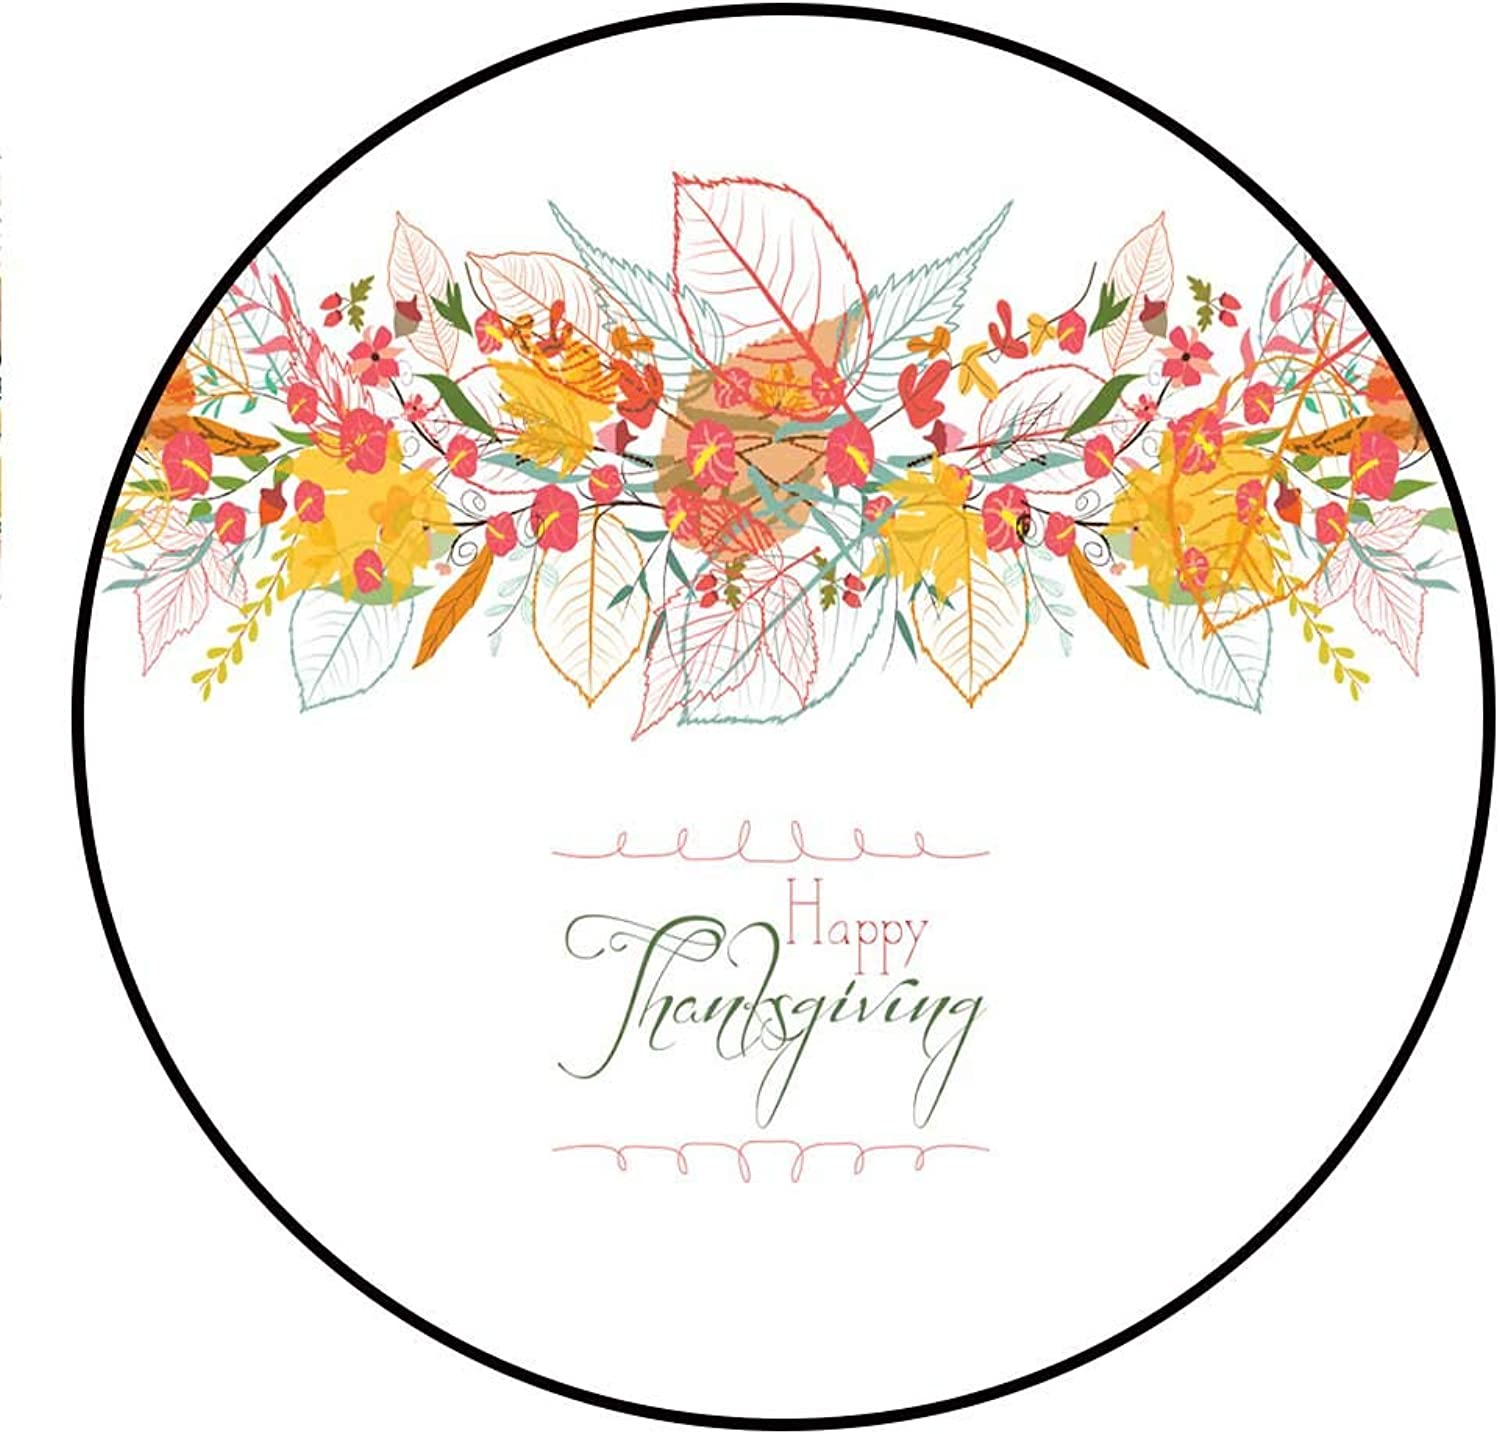 Hua Wu Chou Round Exercise matround BBQ Grill mat D4'2 1.3m Happy Thanksgiving Background of Stylized Autumn Leaves for Greeting Cards